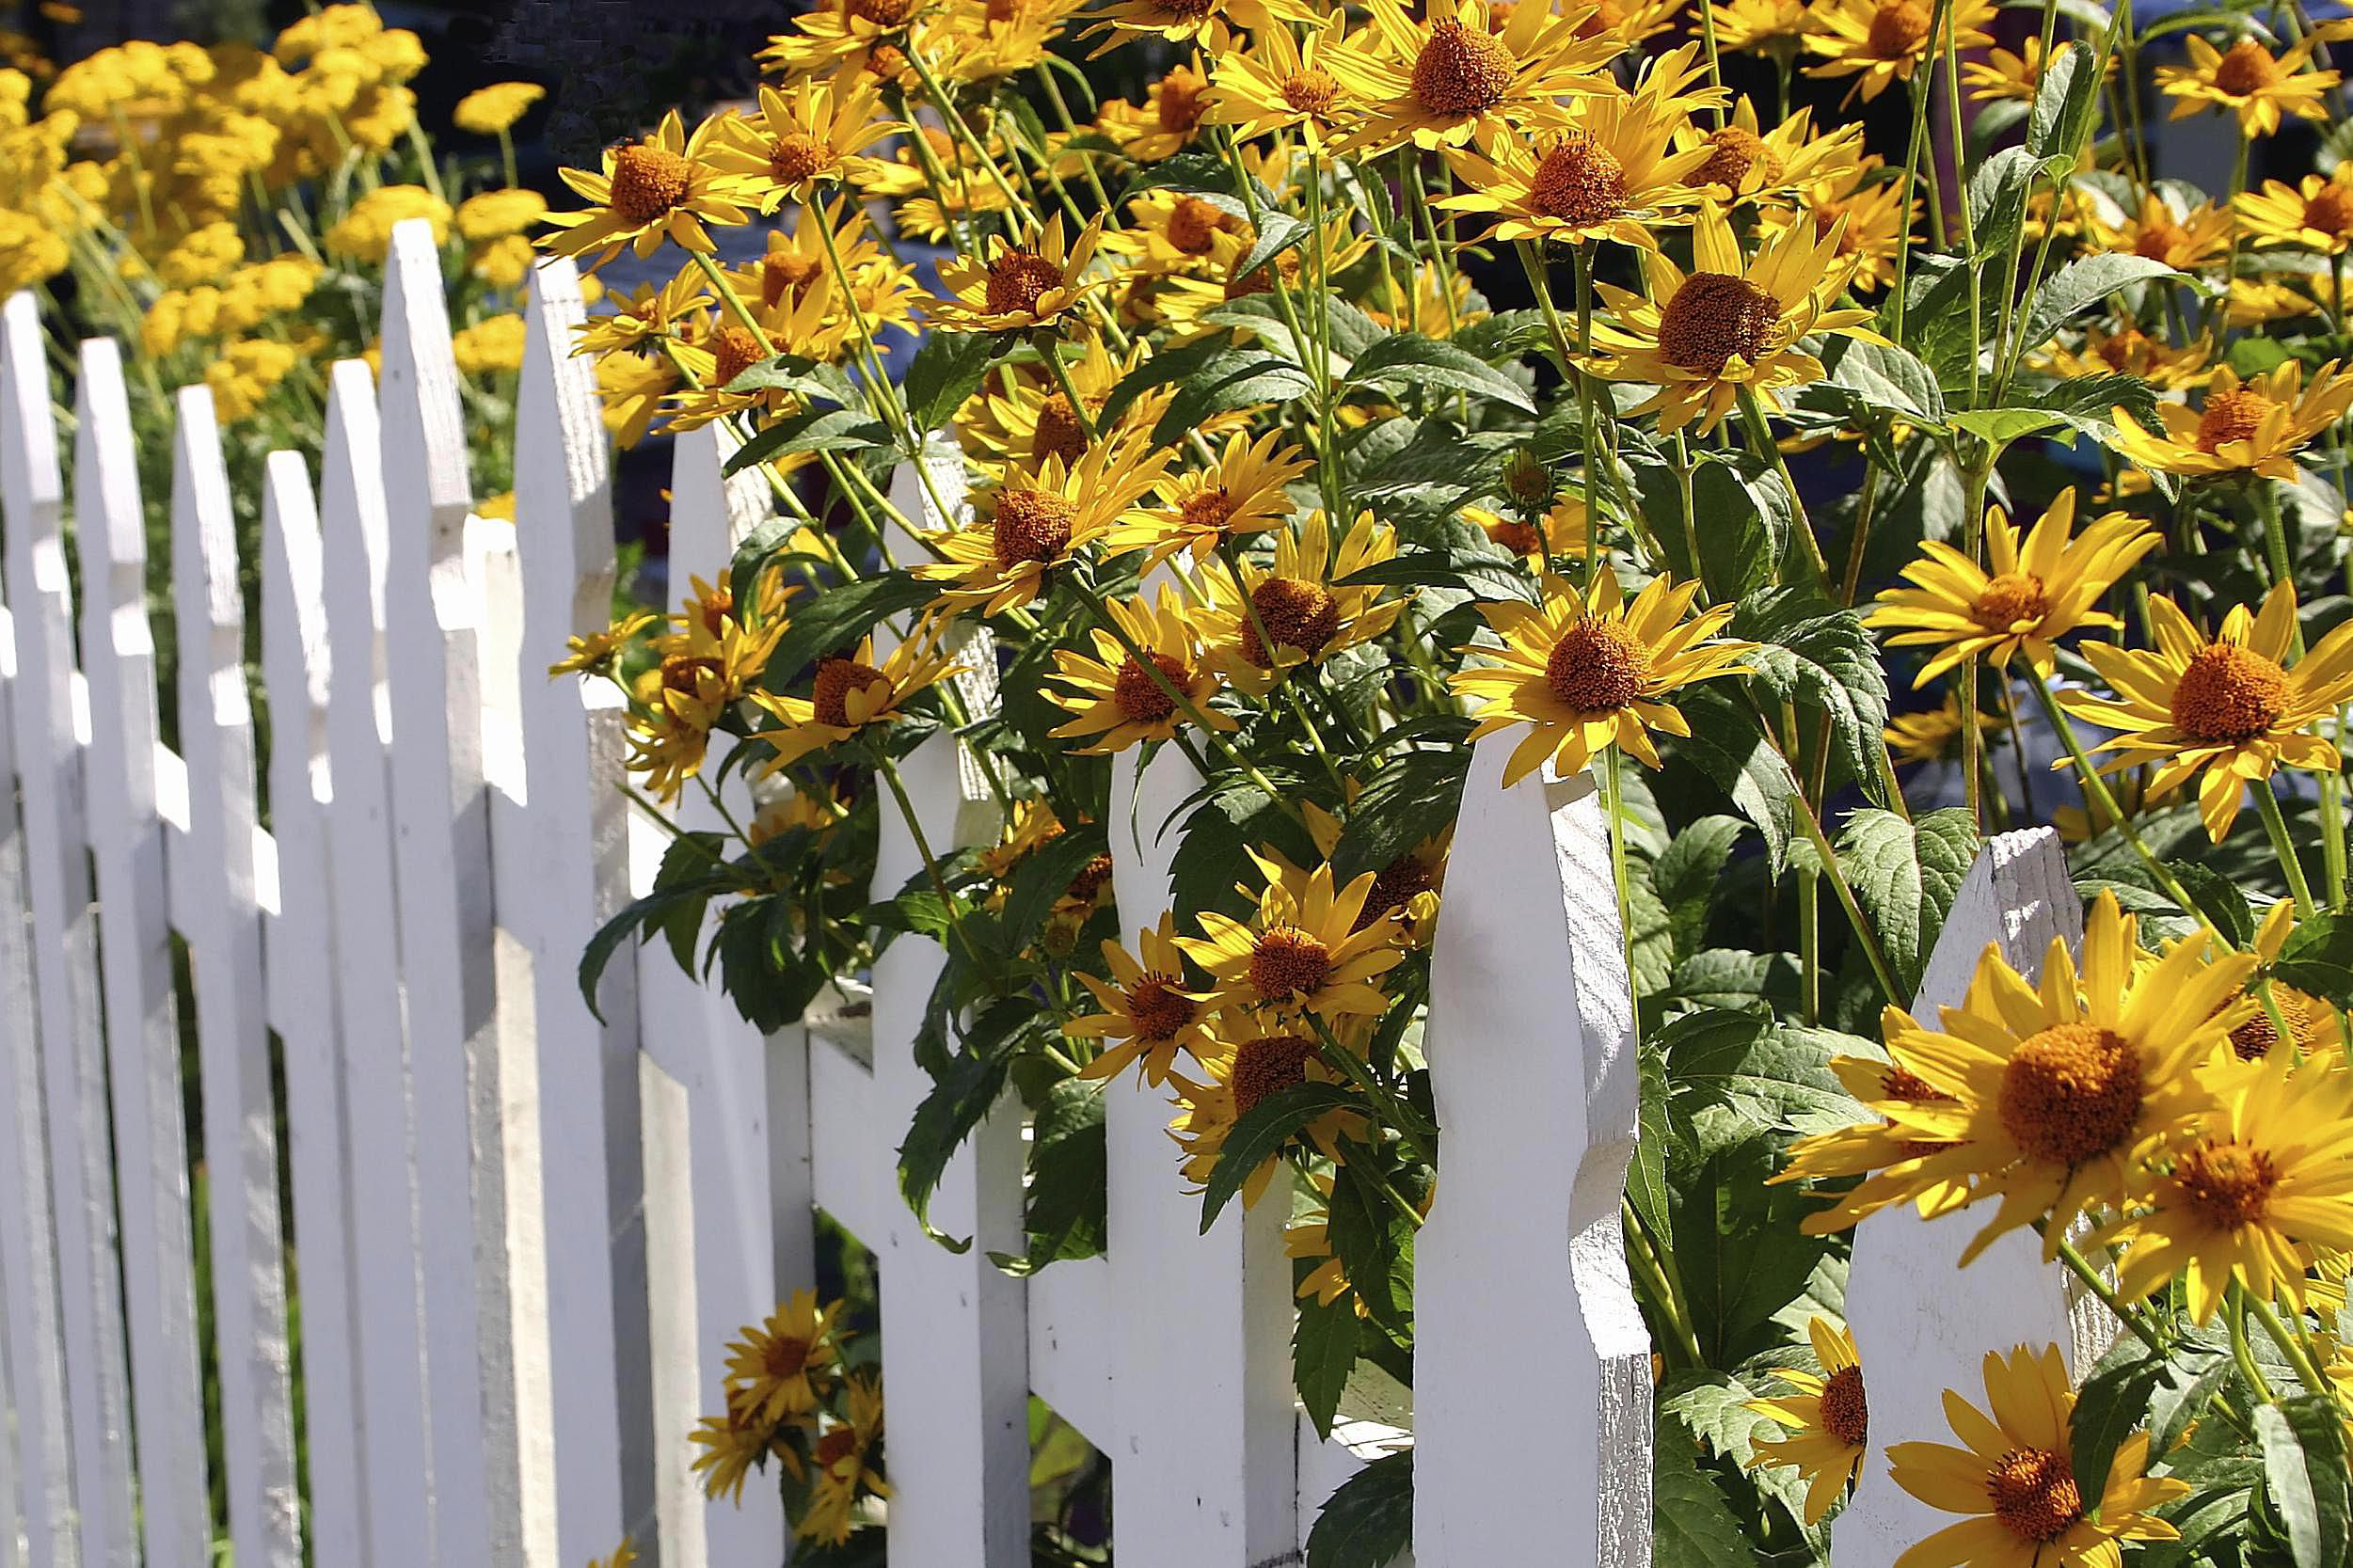 Growing Perennial Flowers From Seed